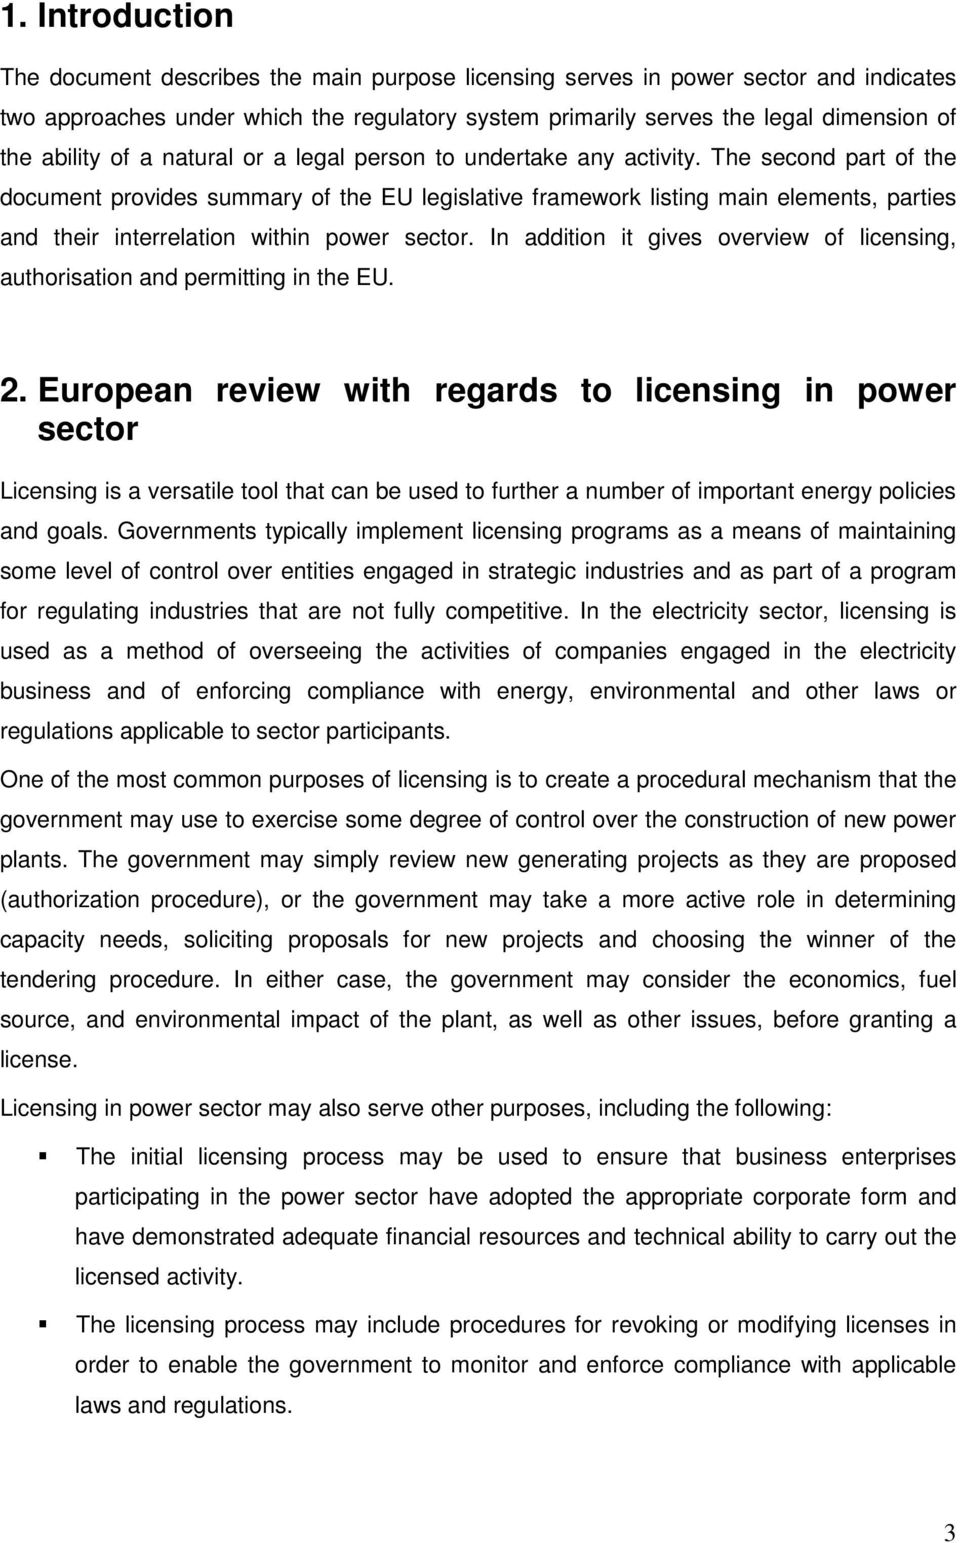 The second part of the document provides summary of the EU legislative framework listing main elements, parties and their interrelation within power sector.